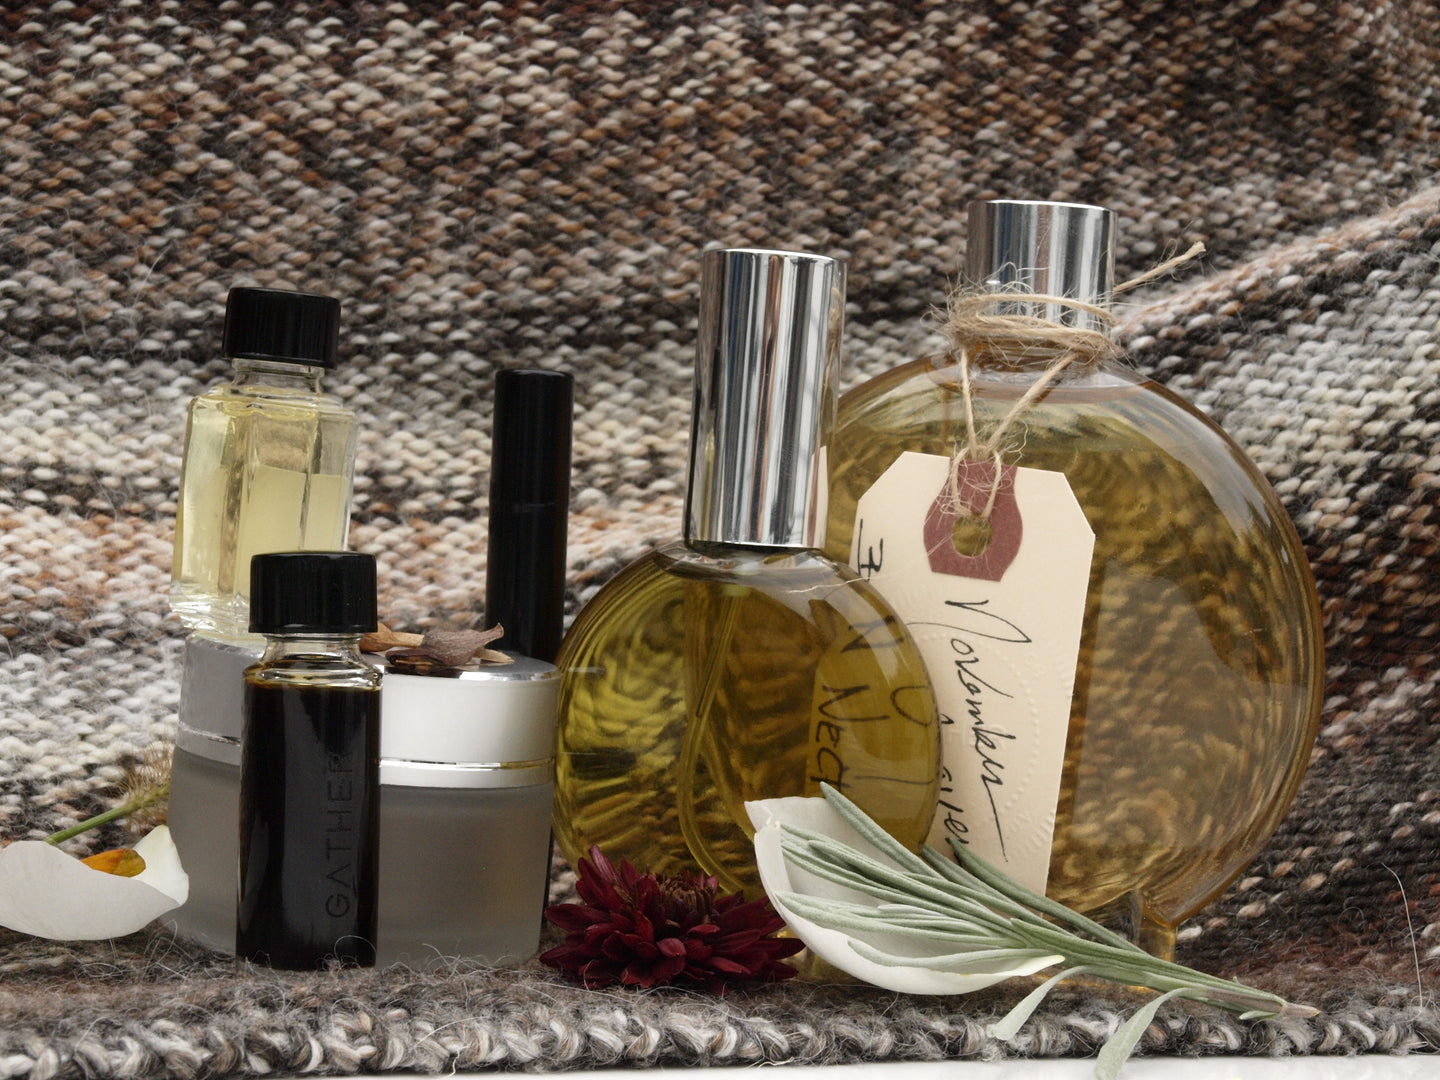 SEASONAL TREASURES .fall to winter: cloaks of scent, comfort, beauty rituals. LIMITED EDITION COFFRET | 8 pc